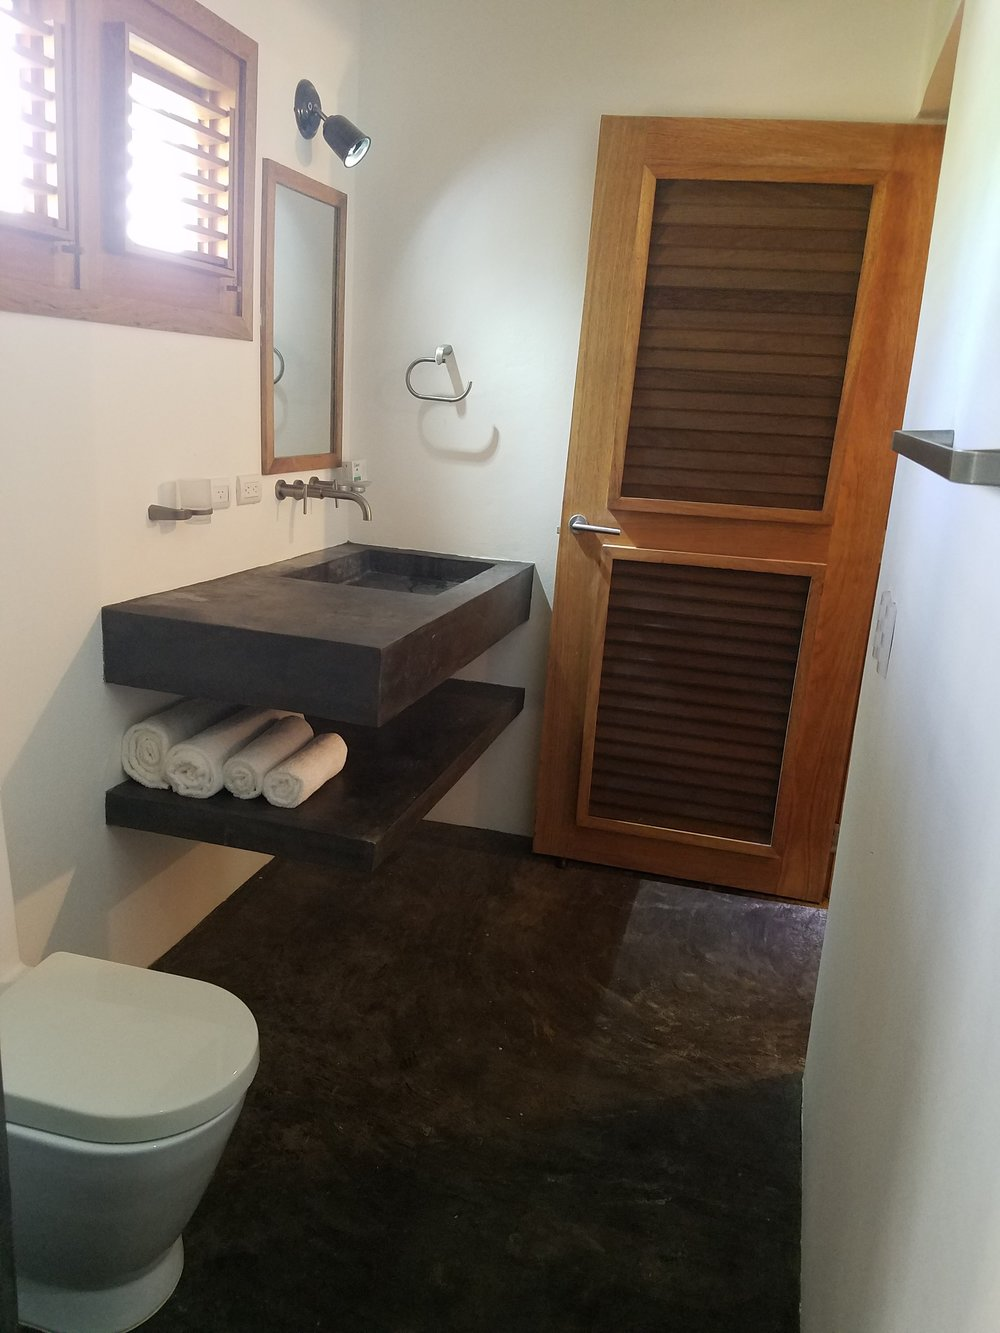 Villa for rent Las Terrenas Cote ci cote la12-min.jpg